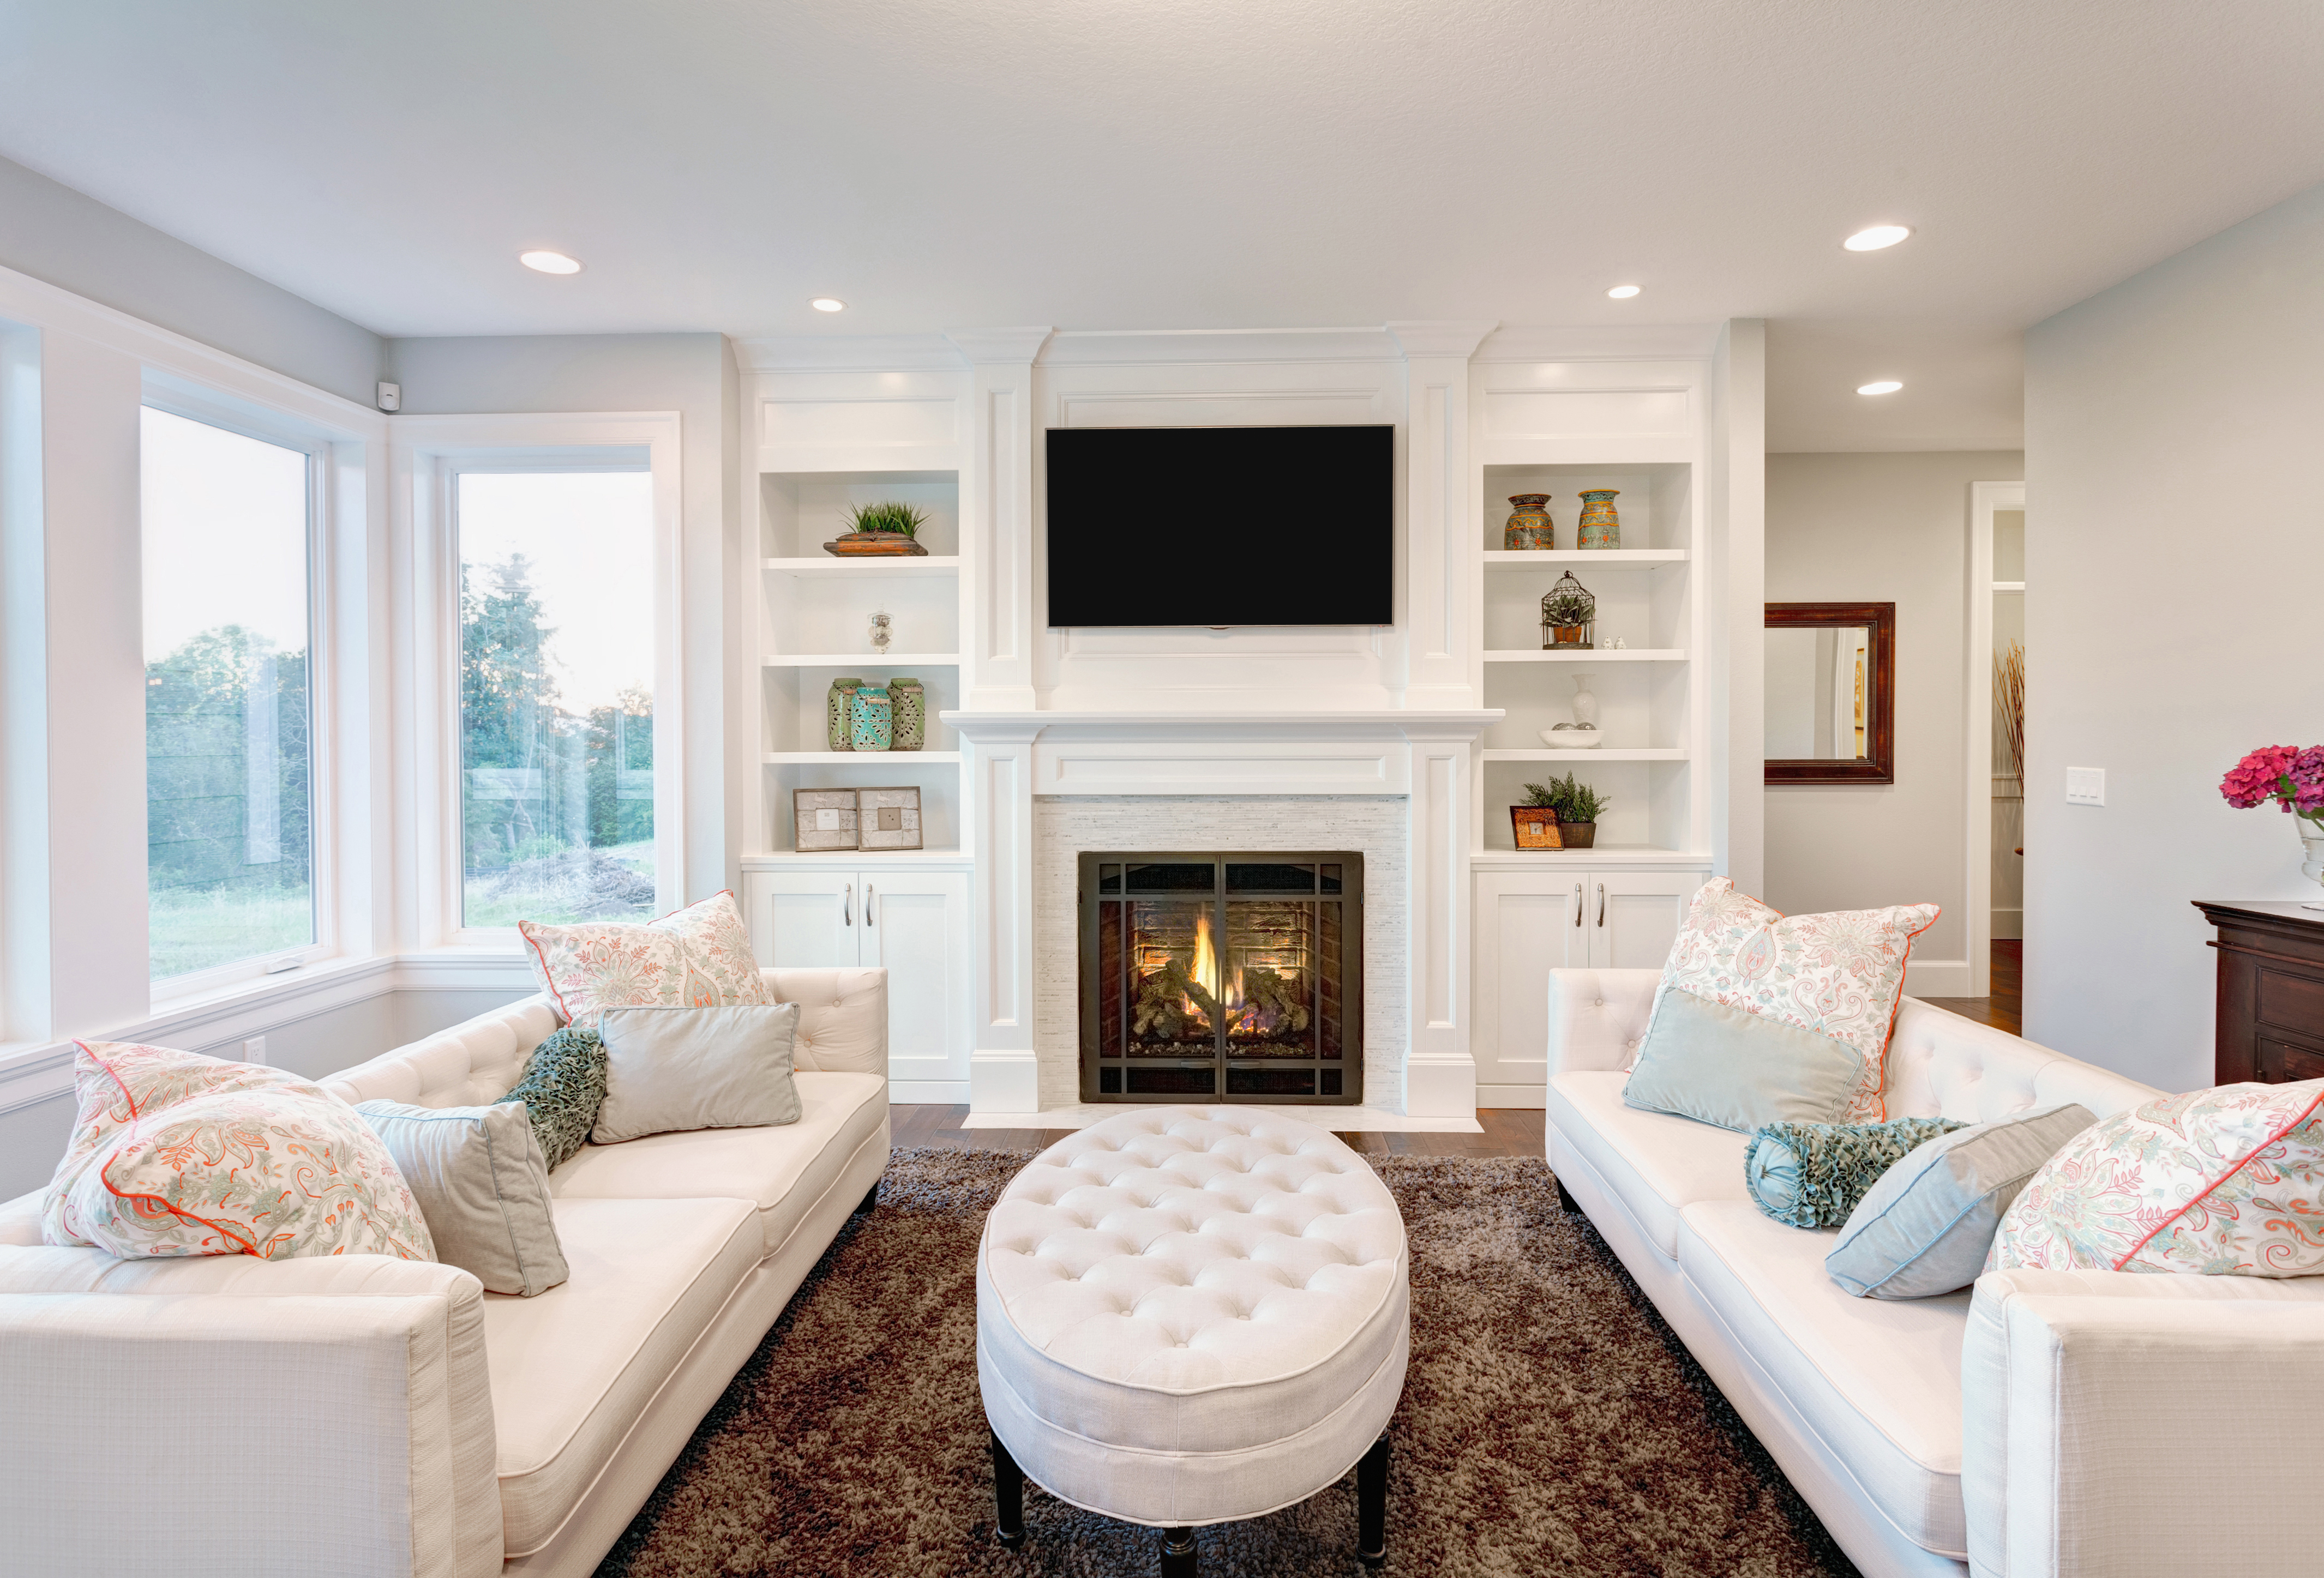 Epic Feng Shui For Real Life: Living Room - Find Local Storage throughout Living Room Feng Shui